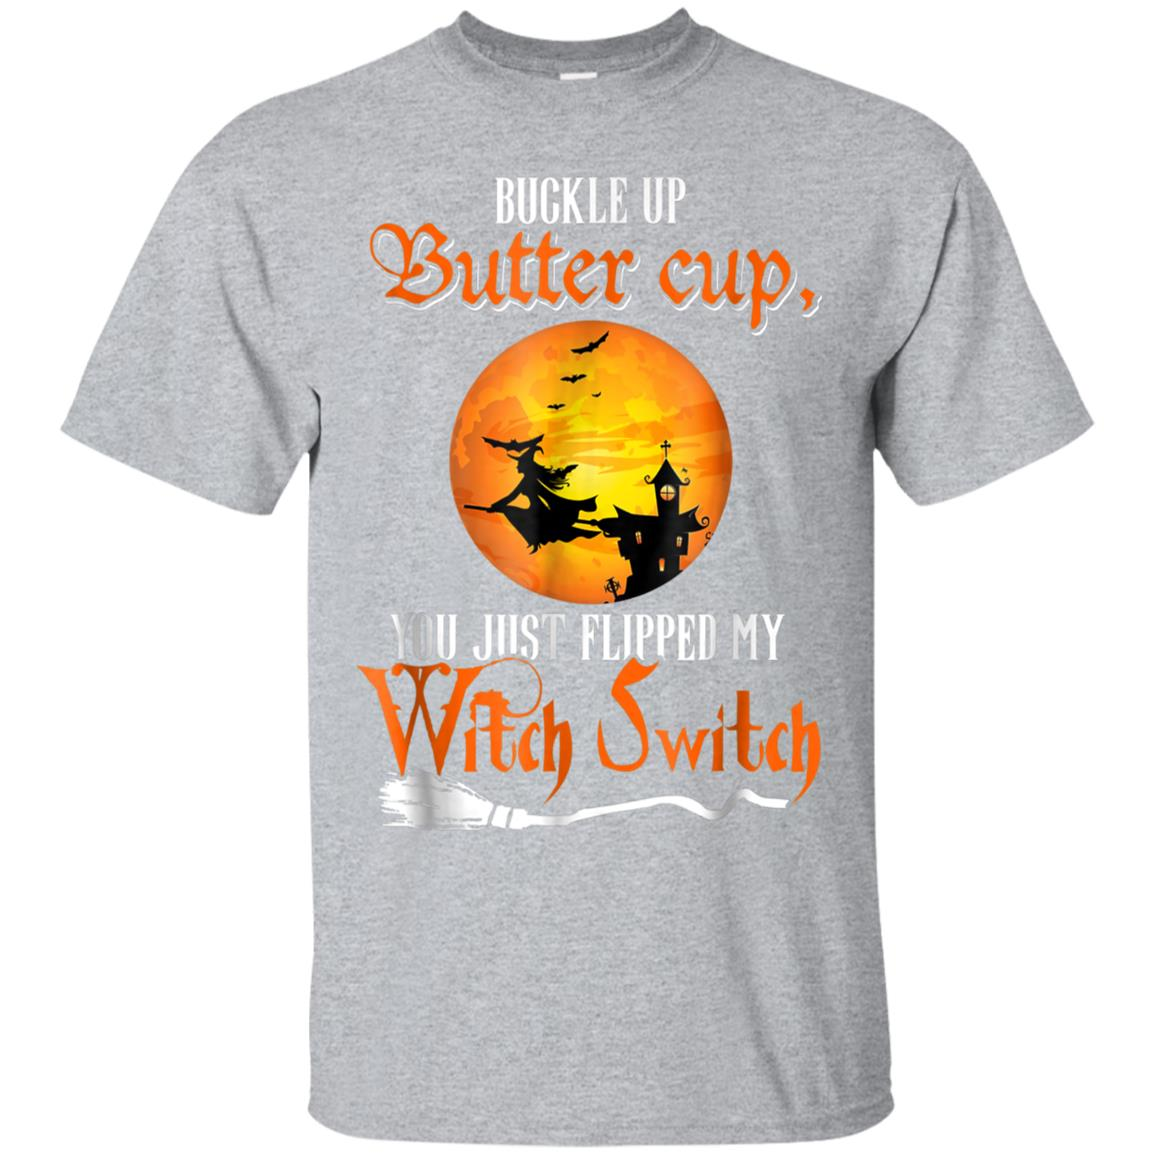 Buckle Up Buttercup T-shirt Mom Gift Halloween Witches Shirt 99promocode